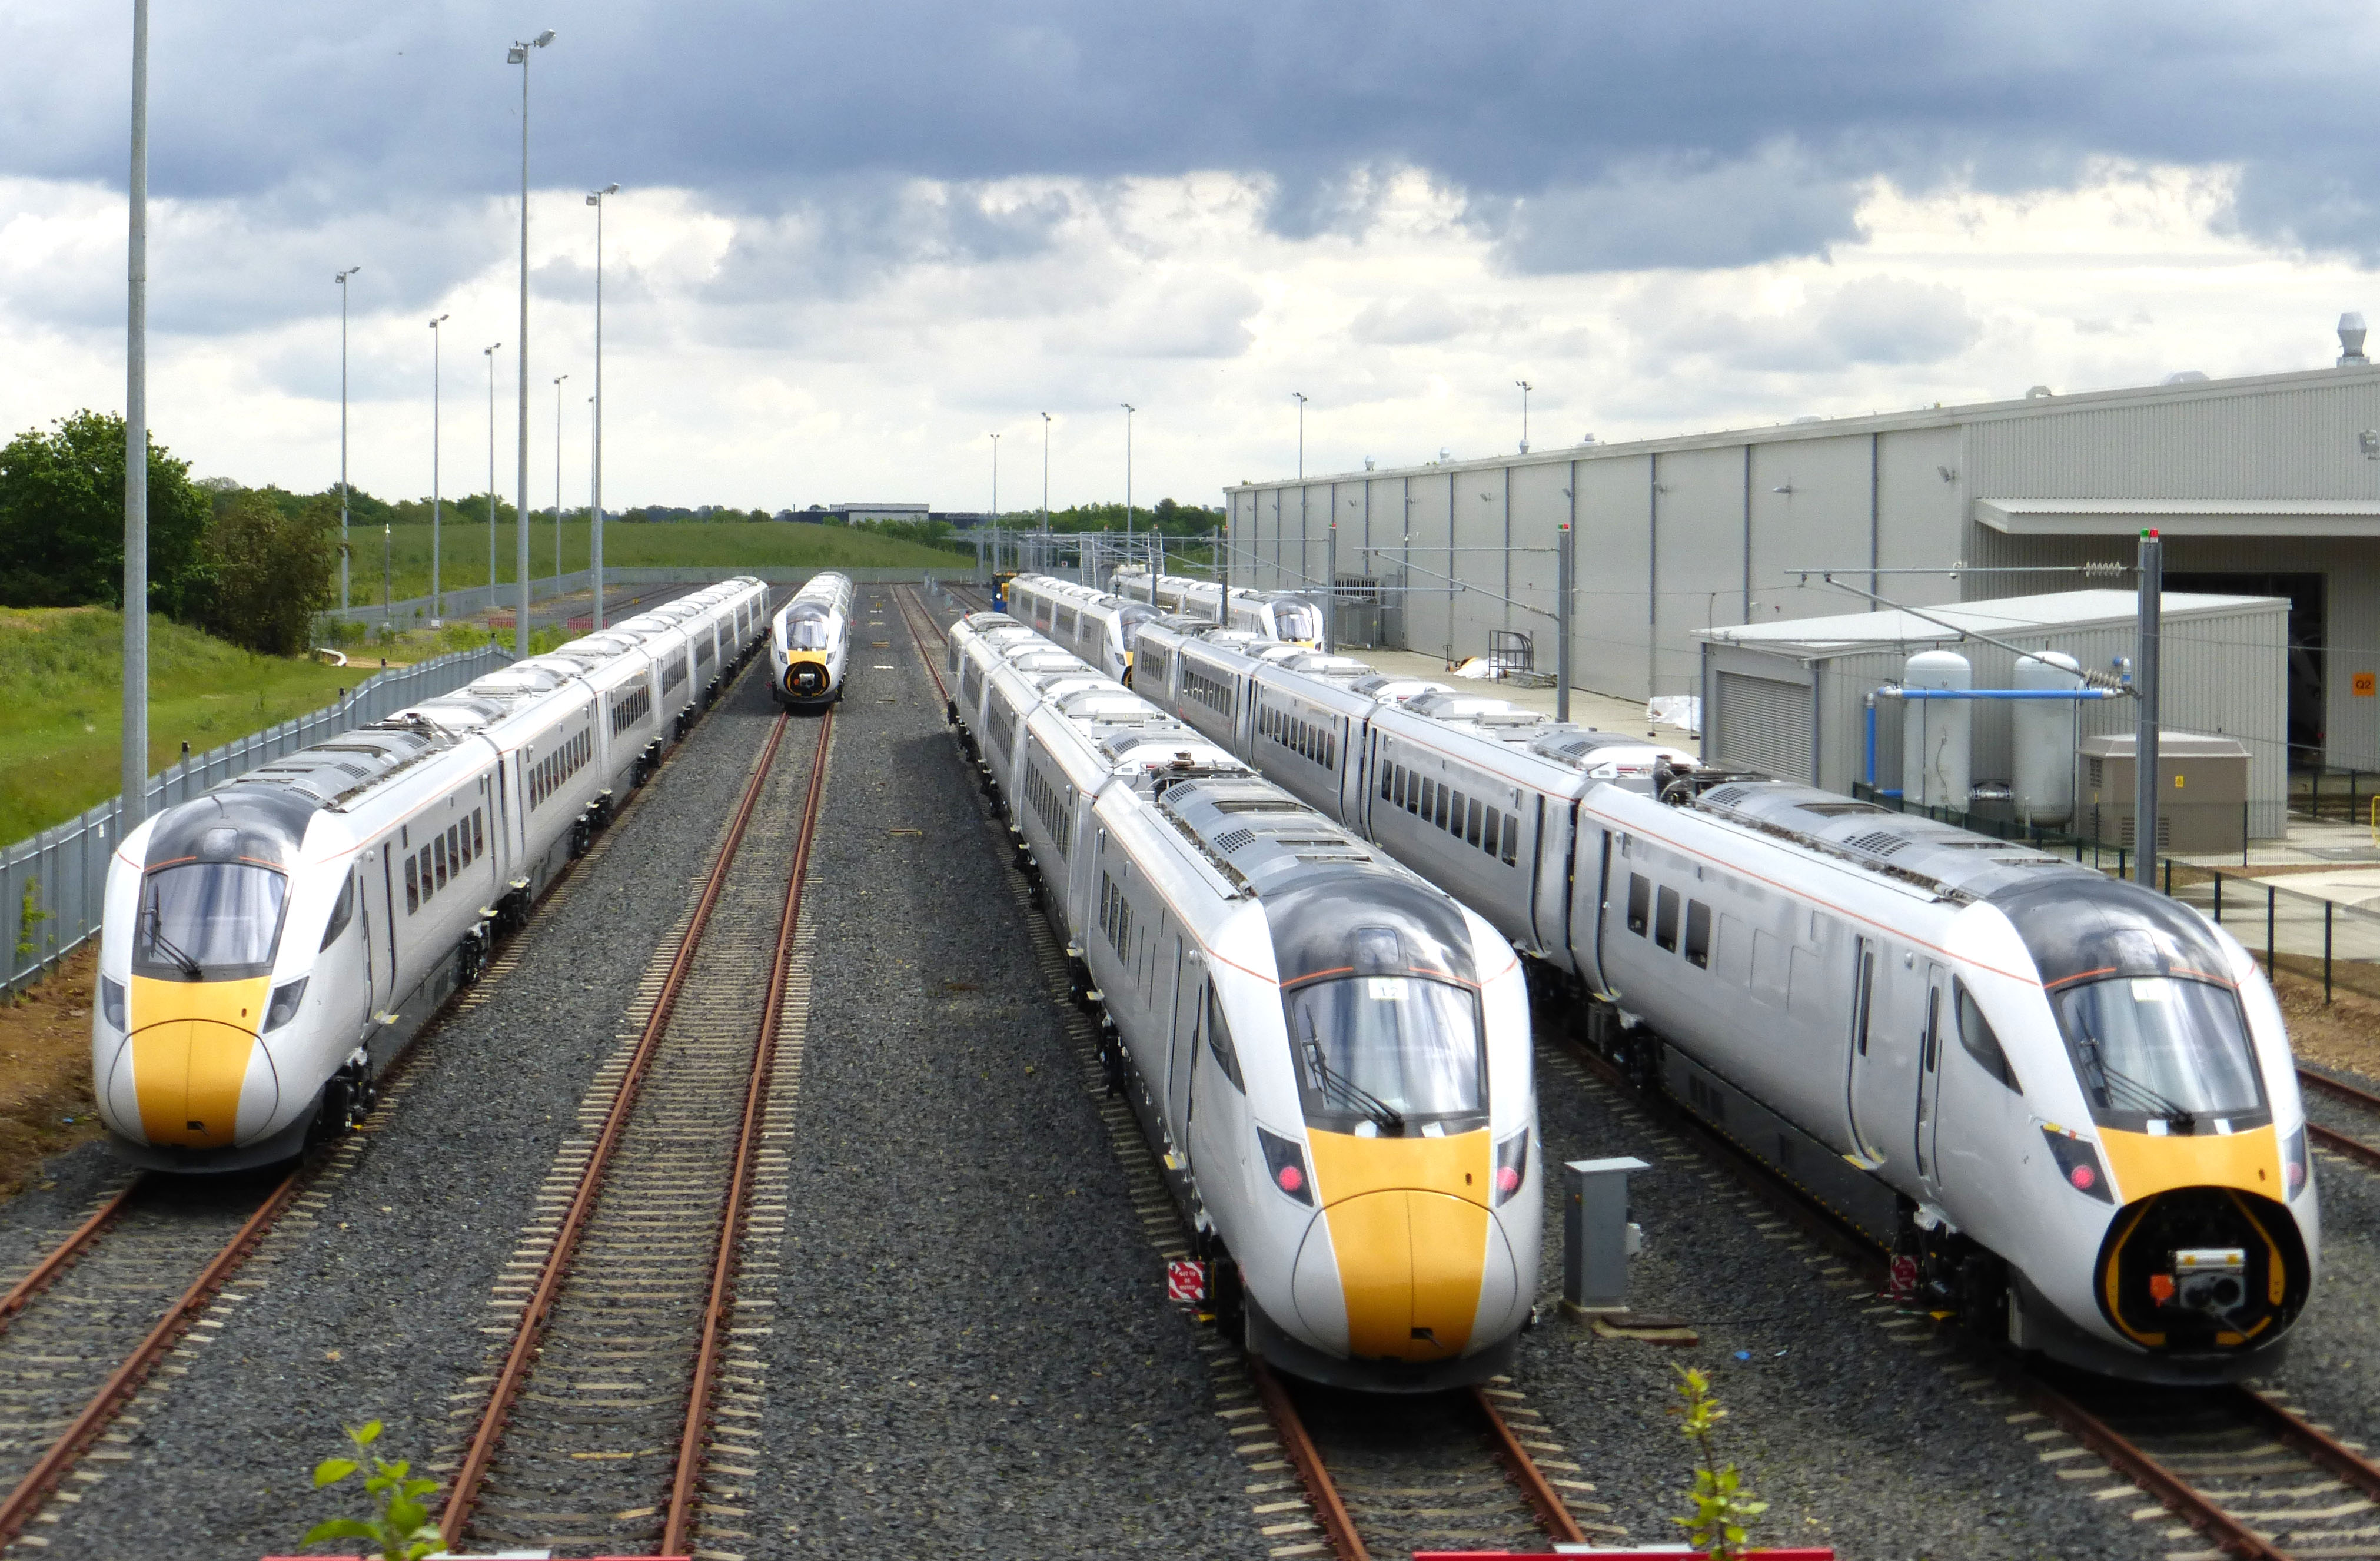 New Trains Ready to Deliver